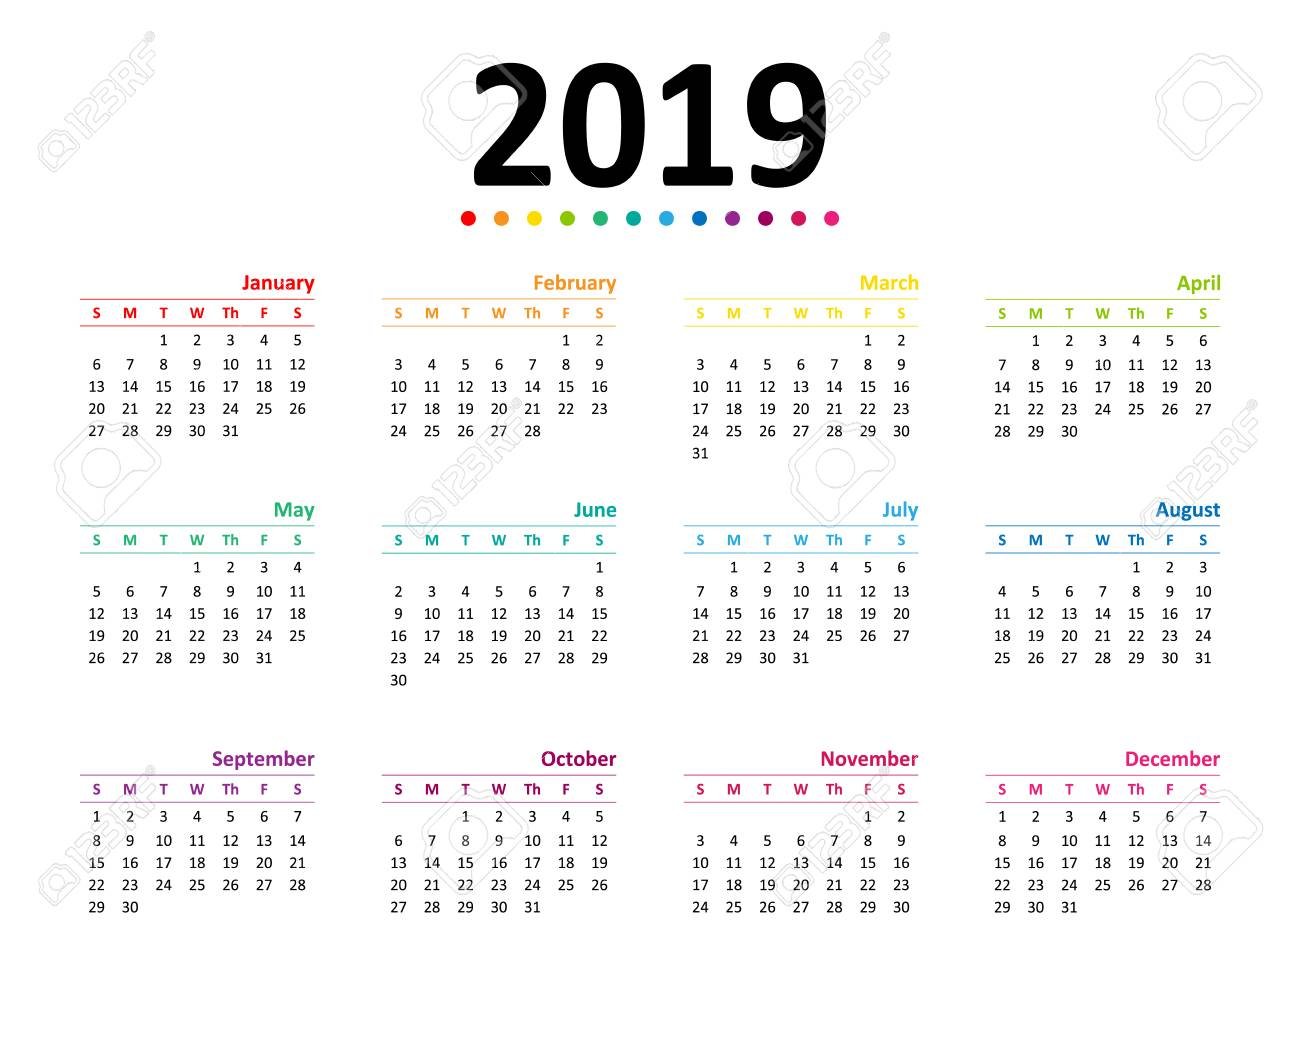 Year Of 2019 Calendar Year 2019 Calendar Wallpaper Royalty Free Cliparts, Vectors, And